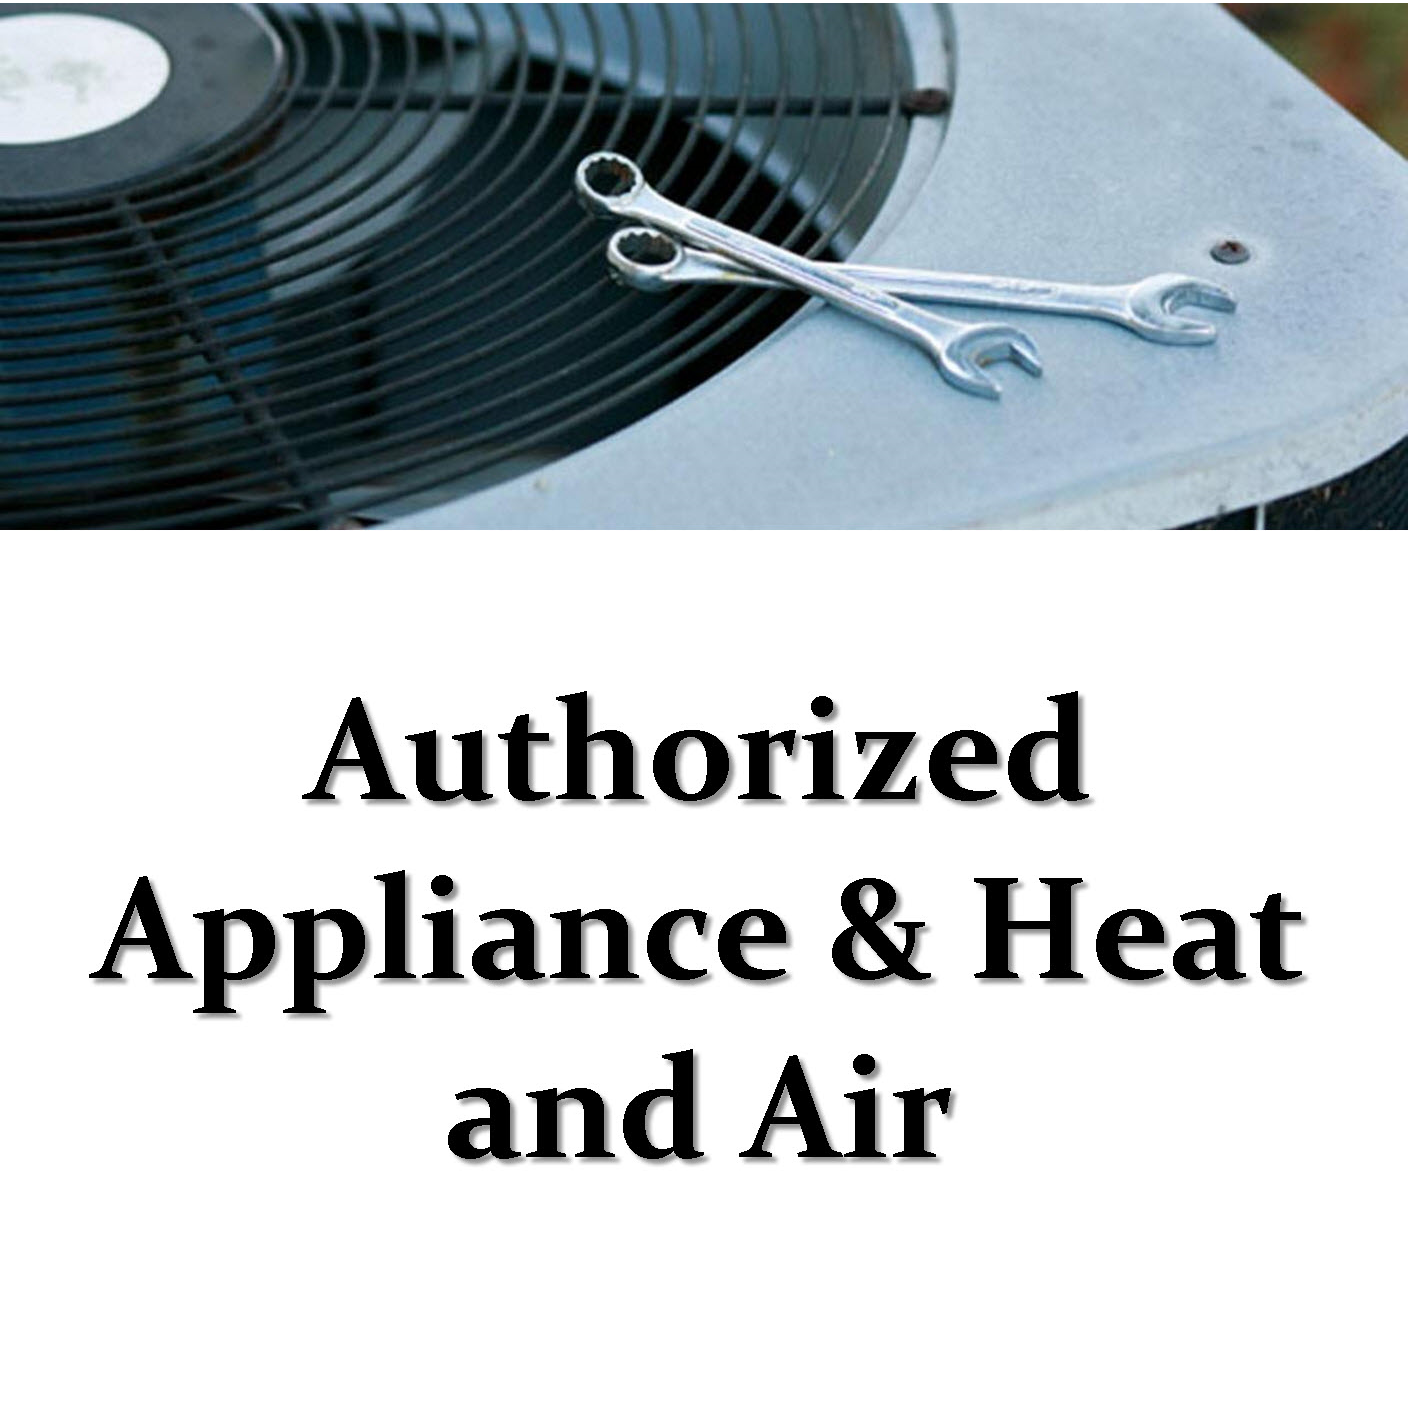 Authorized Appliance & Heat and Air image 7